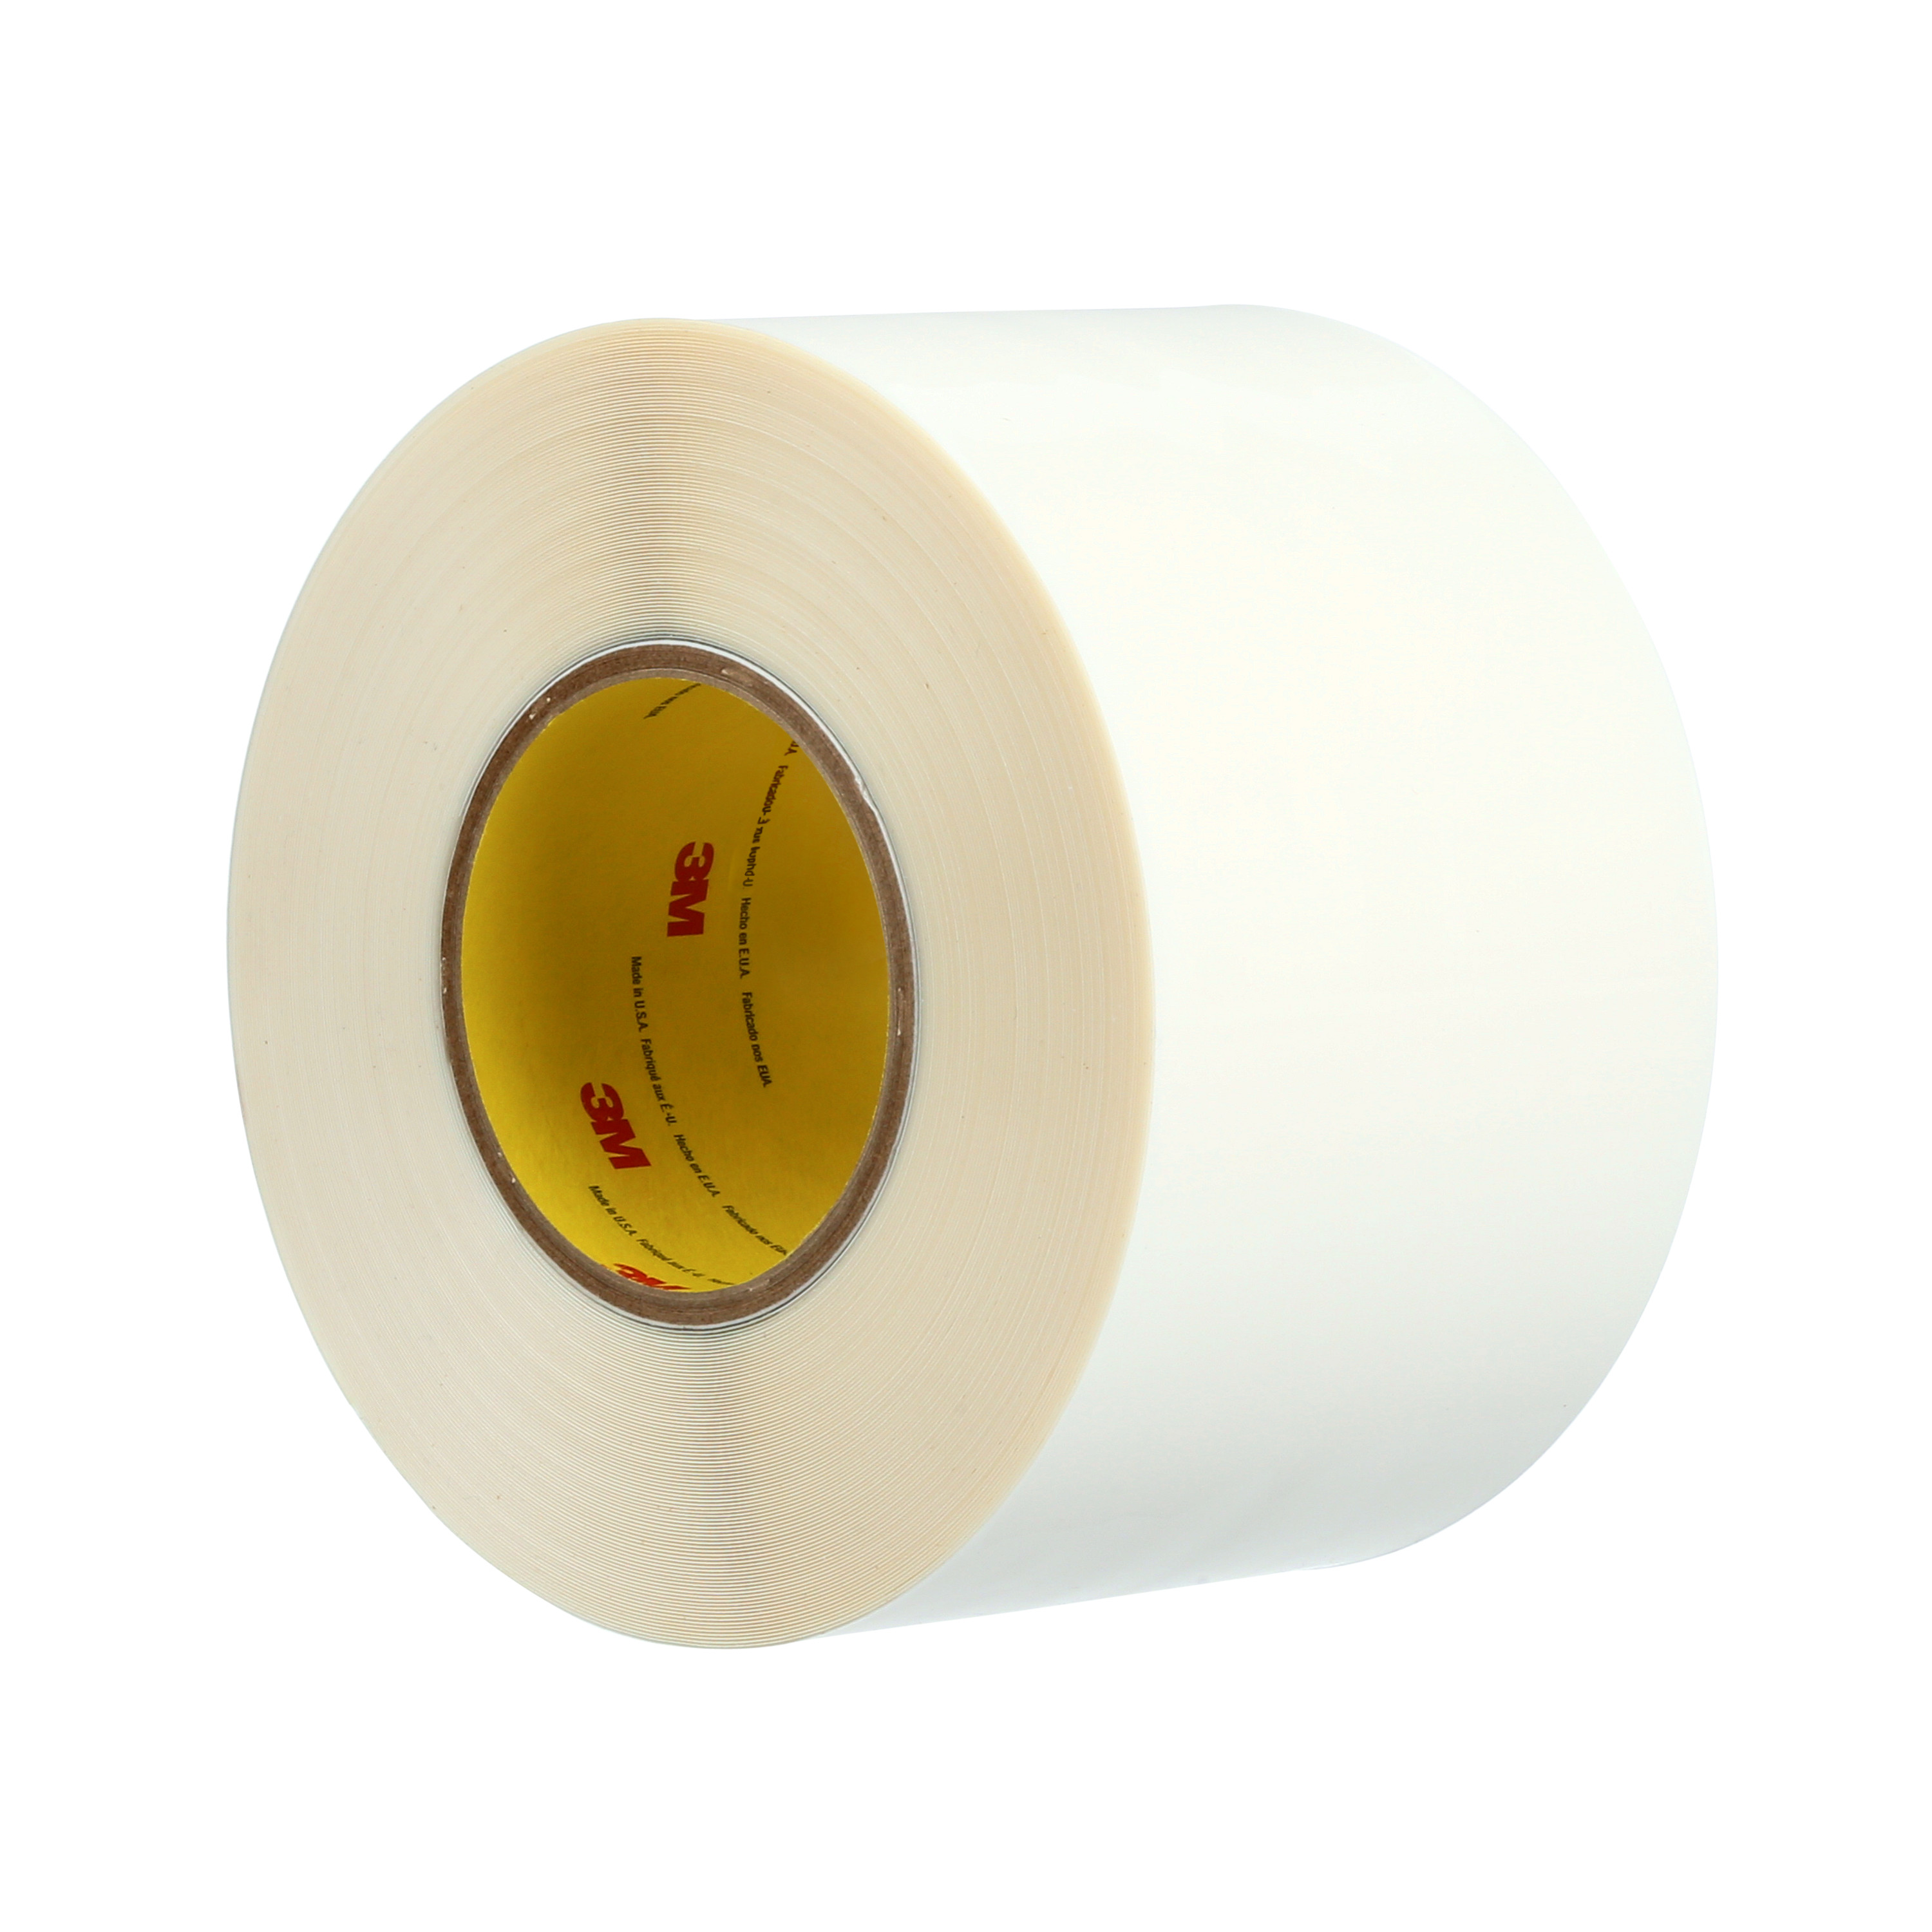 3M™ Polyurethane Protective Tape 8671, Transparent, 4 in x 3 yd, 1 Roll/Case, Sample